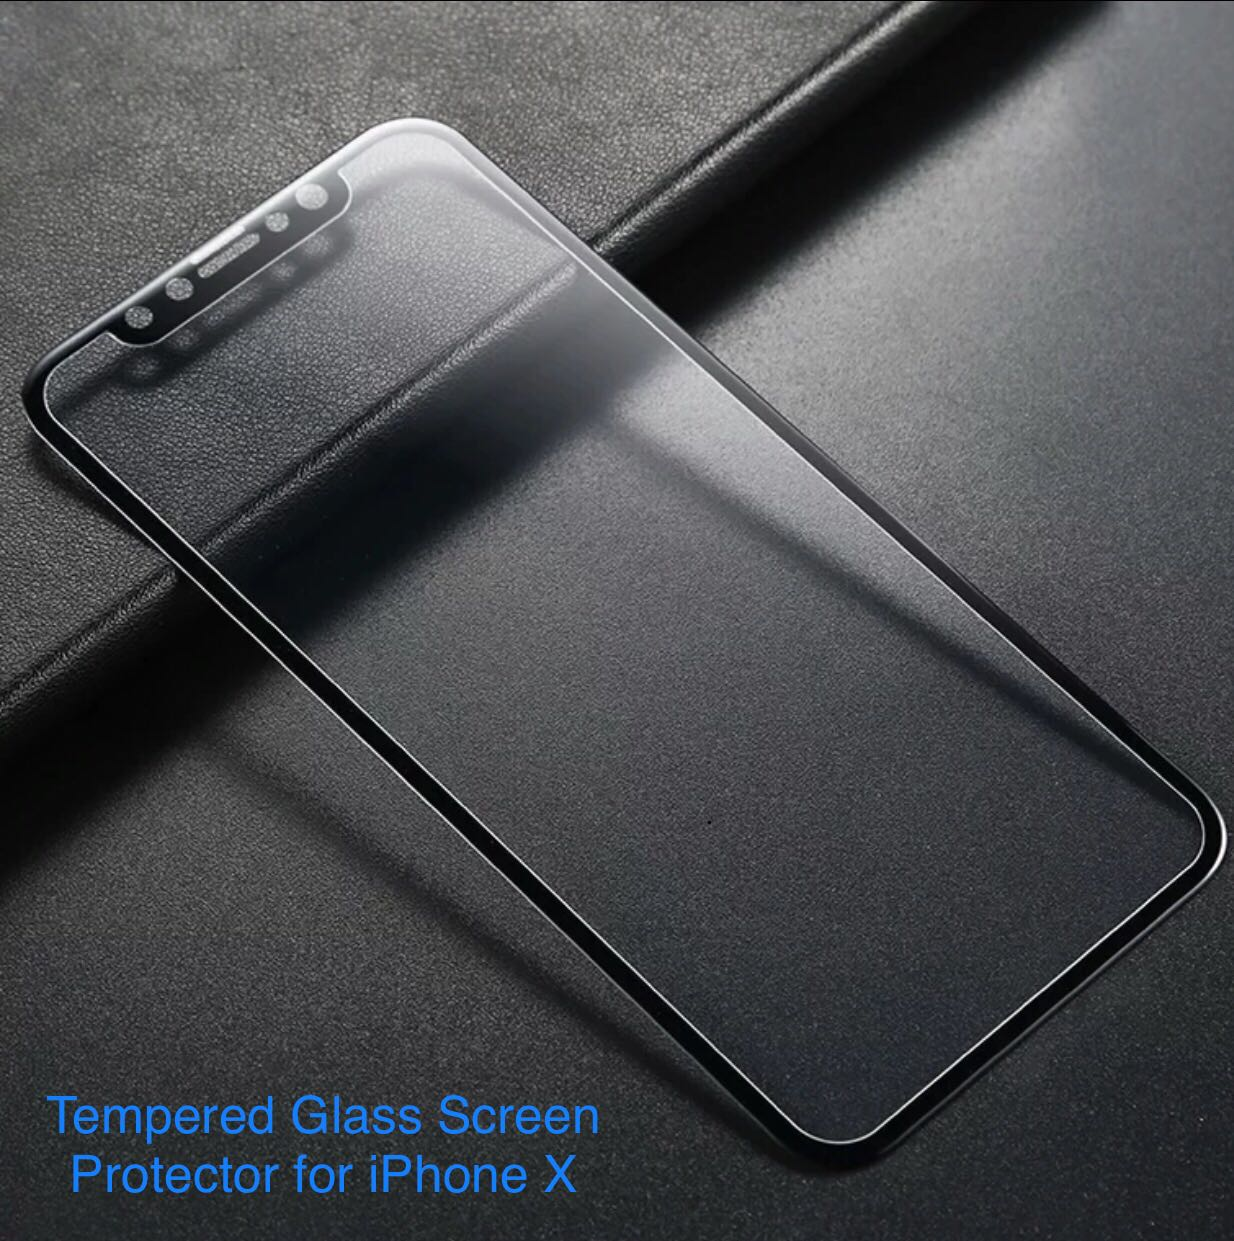 Tempered Glass Screen Protector for iPhone 7/7+/8/8+/X